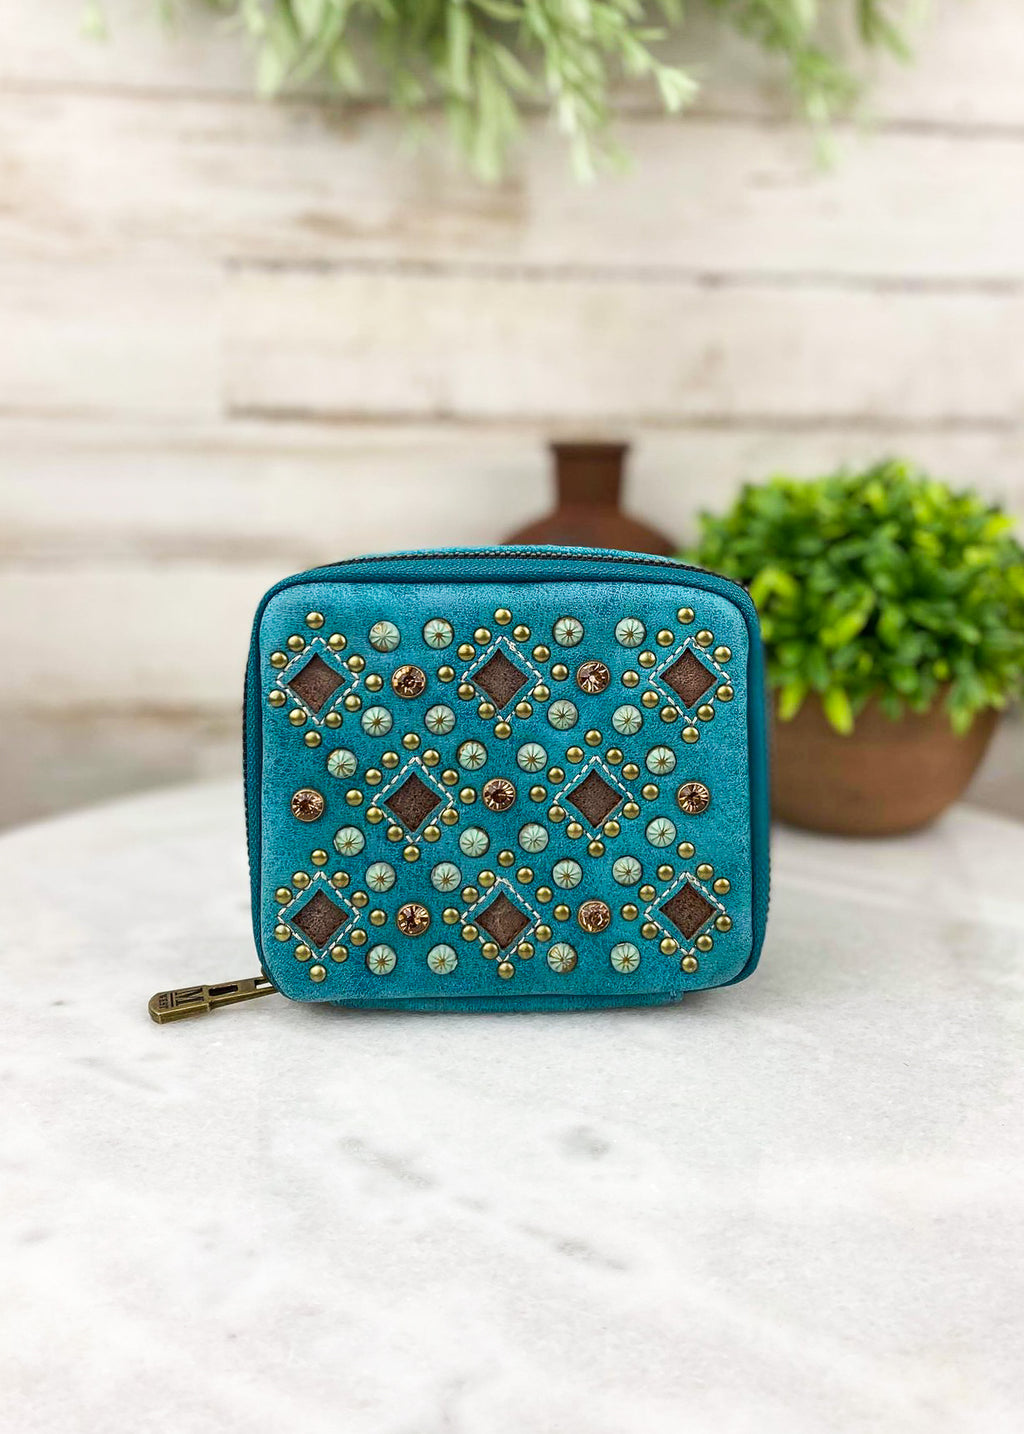 Small turquoise and antique studded pill and accessory travel case with zip around closure and plain turquoise leather on back taken inside on white table with green floral décor